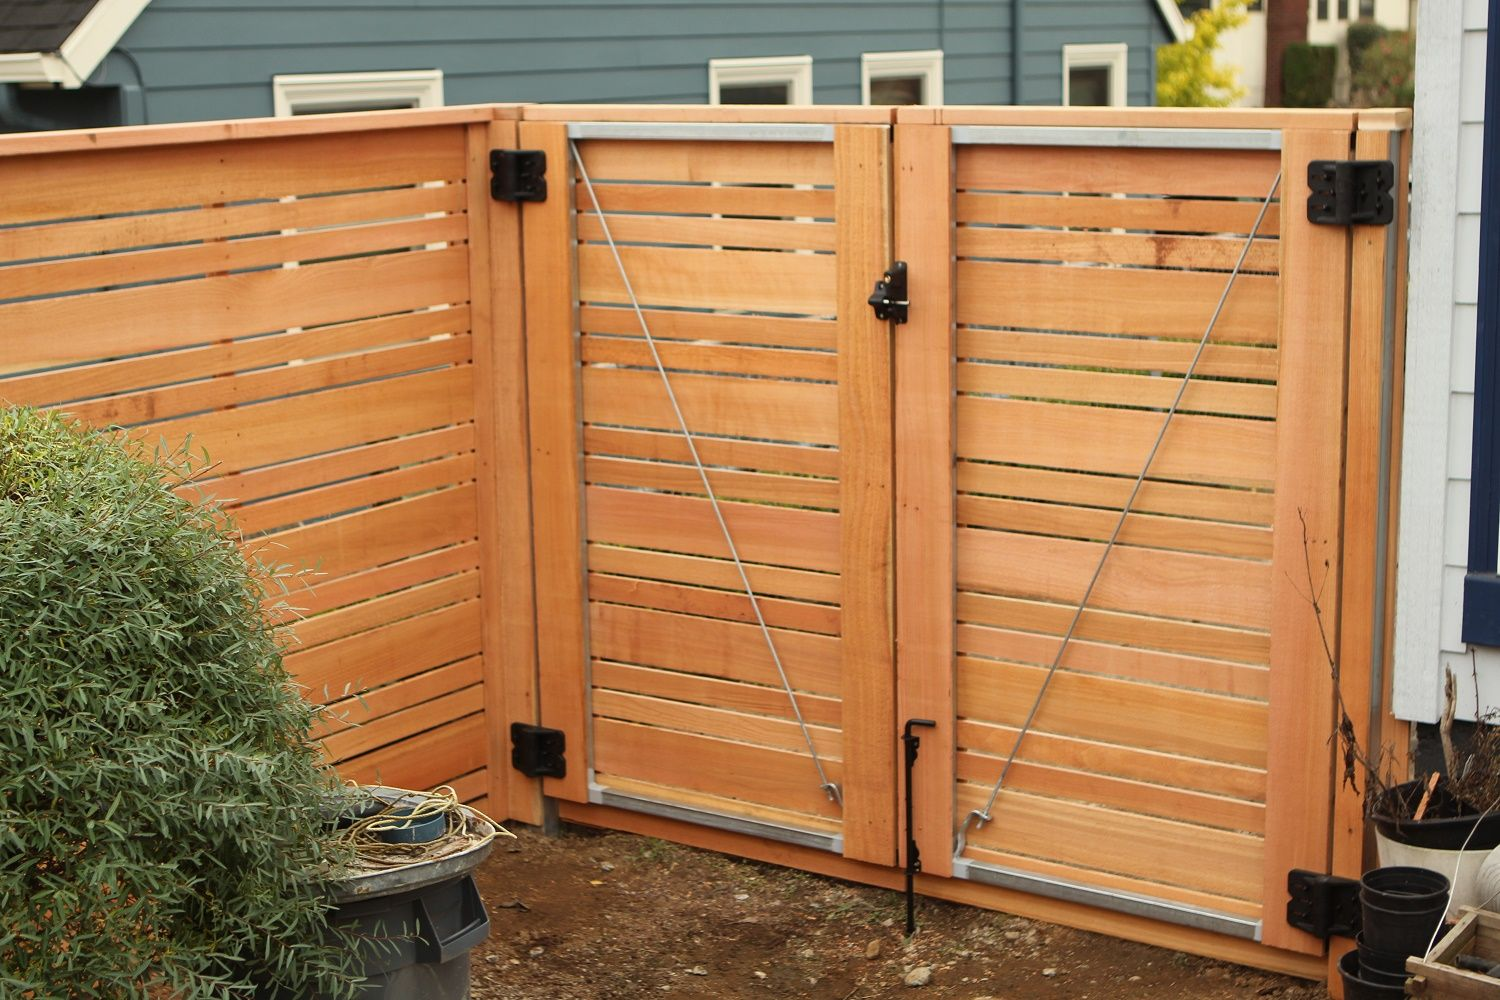 Double Door Gate Horizontal Wood Fence With Alternating Picket Sizes For An Extra Unique Look Cedar Fences Wood Fence Gates Wooden Fence Gate Wood Fence